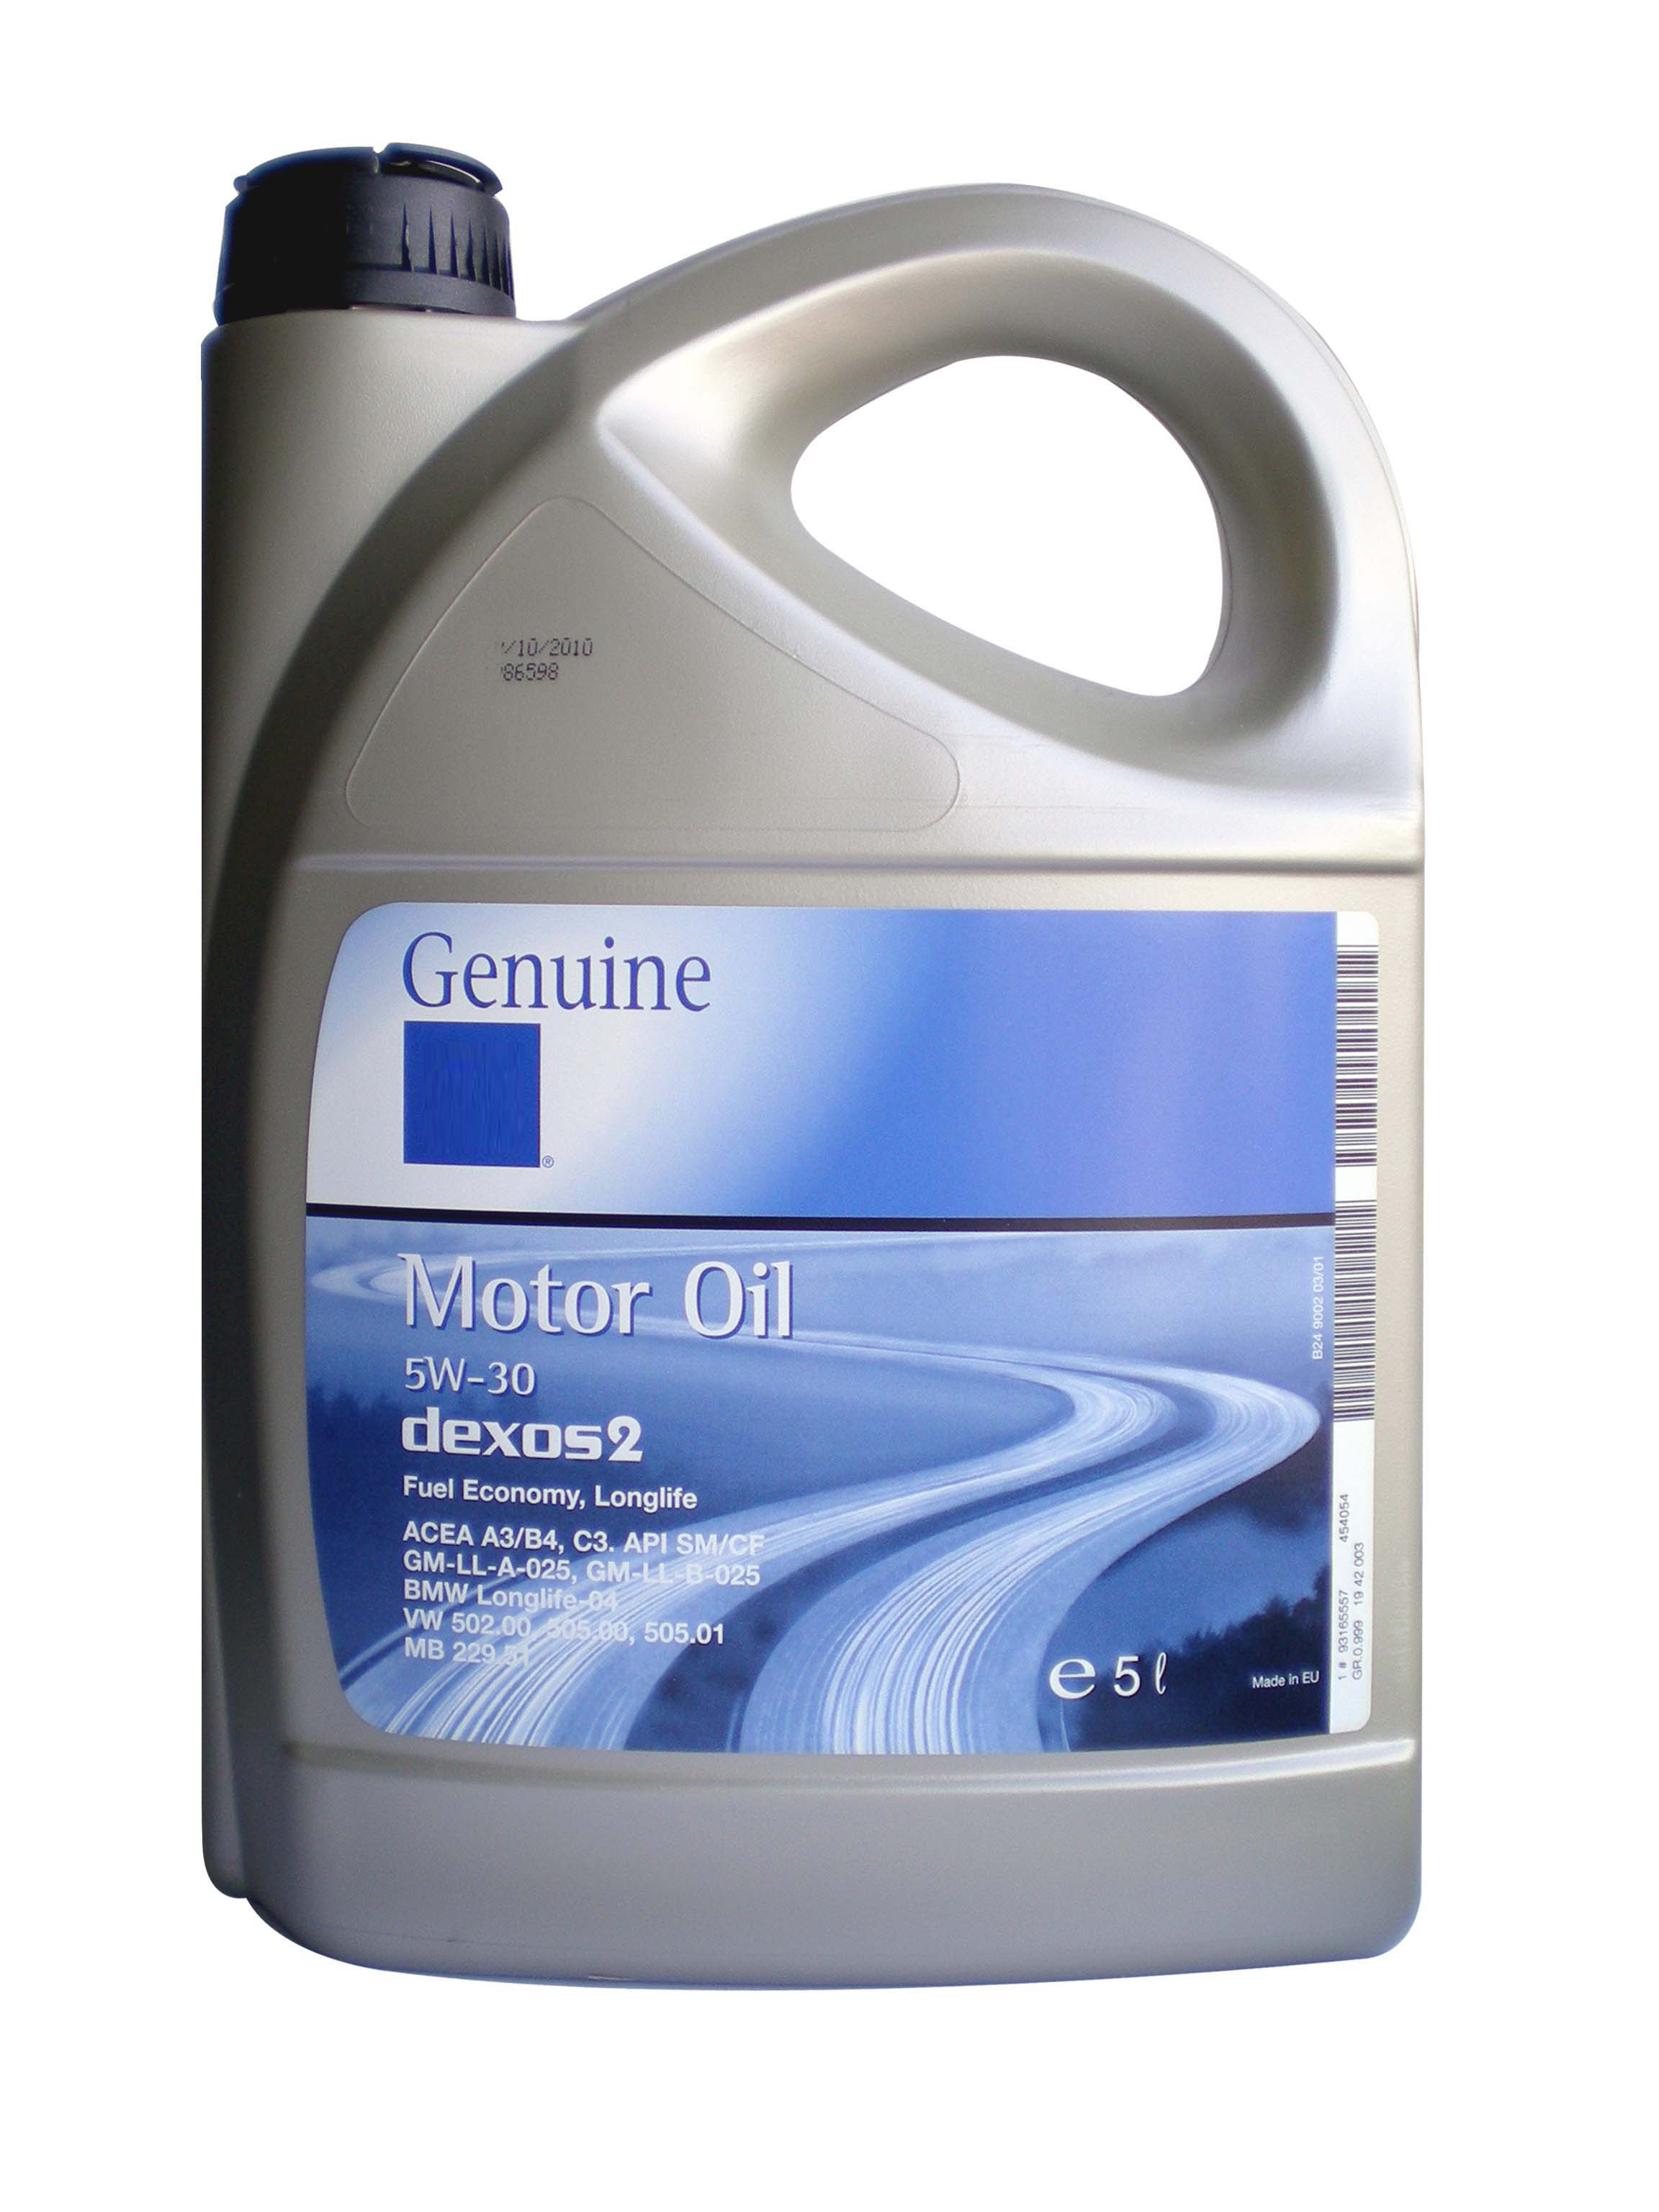 General Motors Motor Oil Dexos 2 5w30